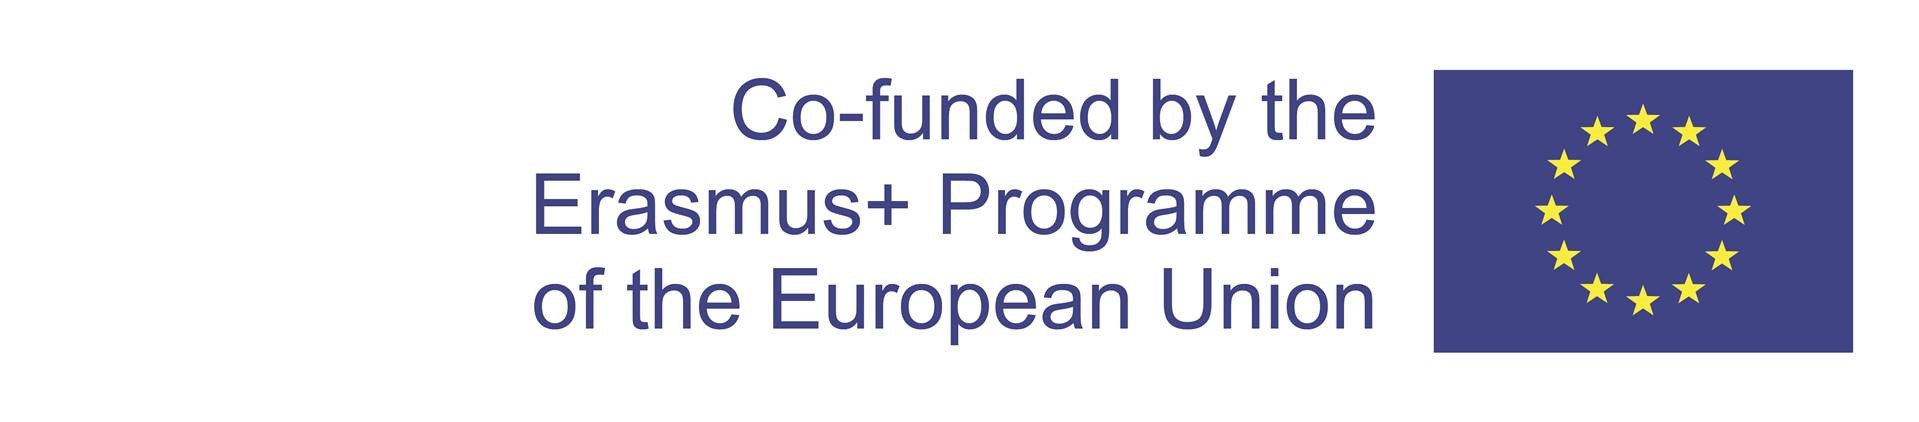 Co-funded by the Erasmus+Programme of the European Union -logo.